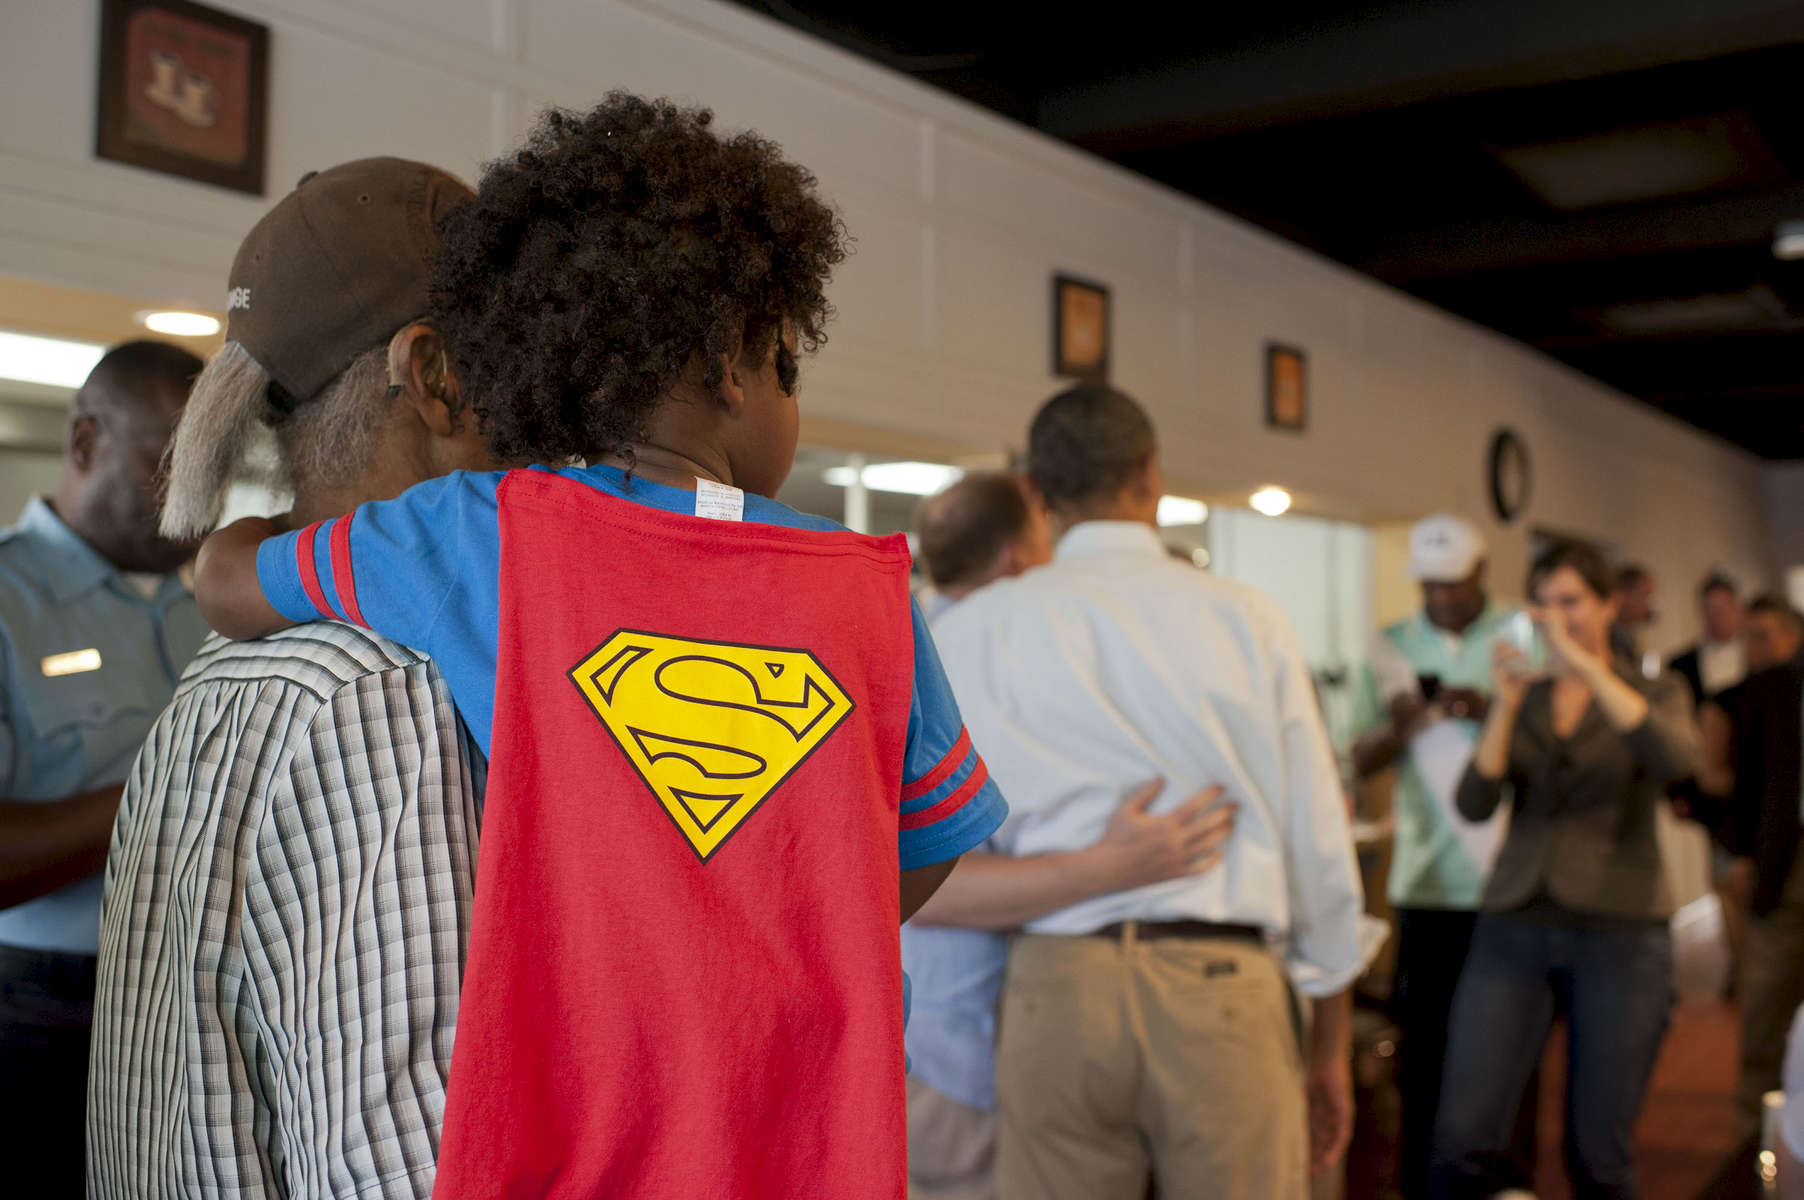 September 3, 2012 - TOLEDO, OH: A young boy in a Superman costume waits to meet President Barack Obama during his visit to Rick's City Diner in Toledo, OH. (Scout Tufankjian for Obama for America/Polaris)